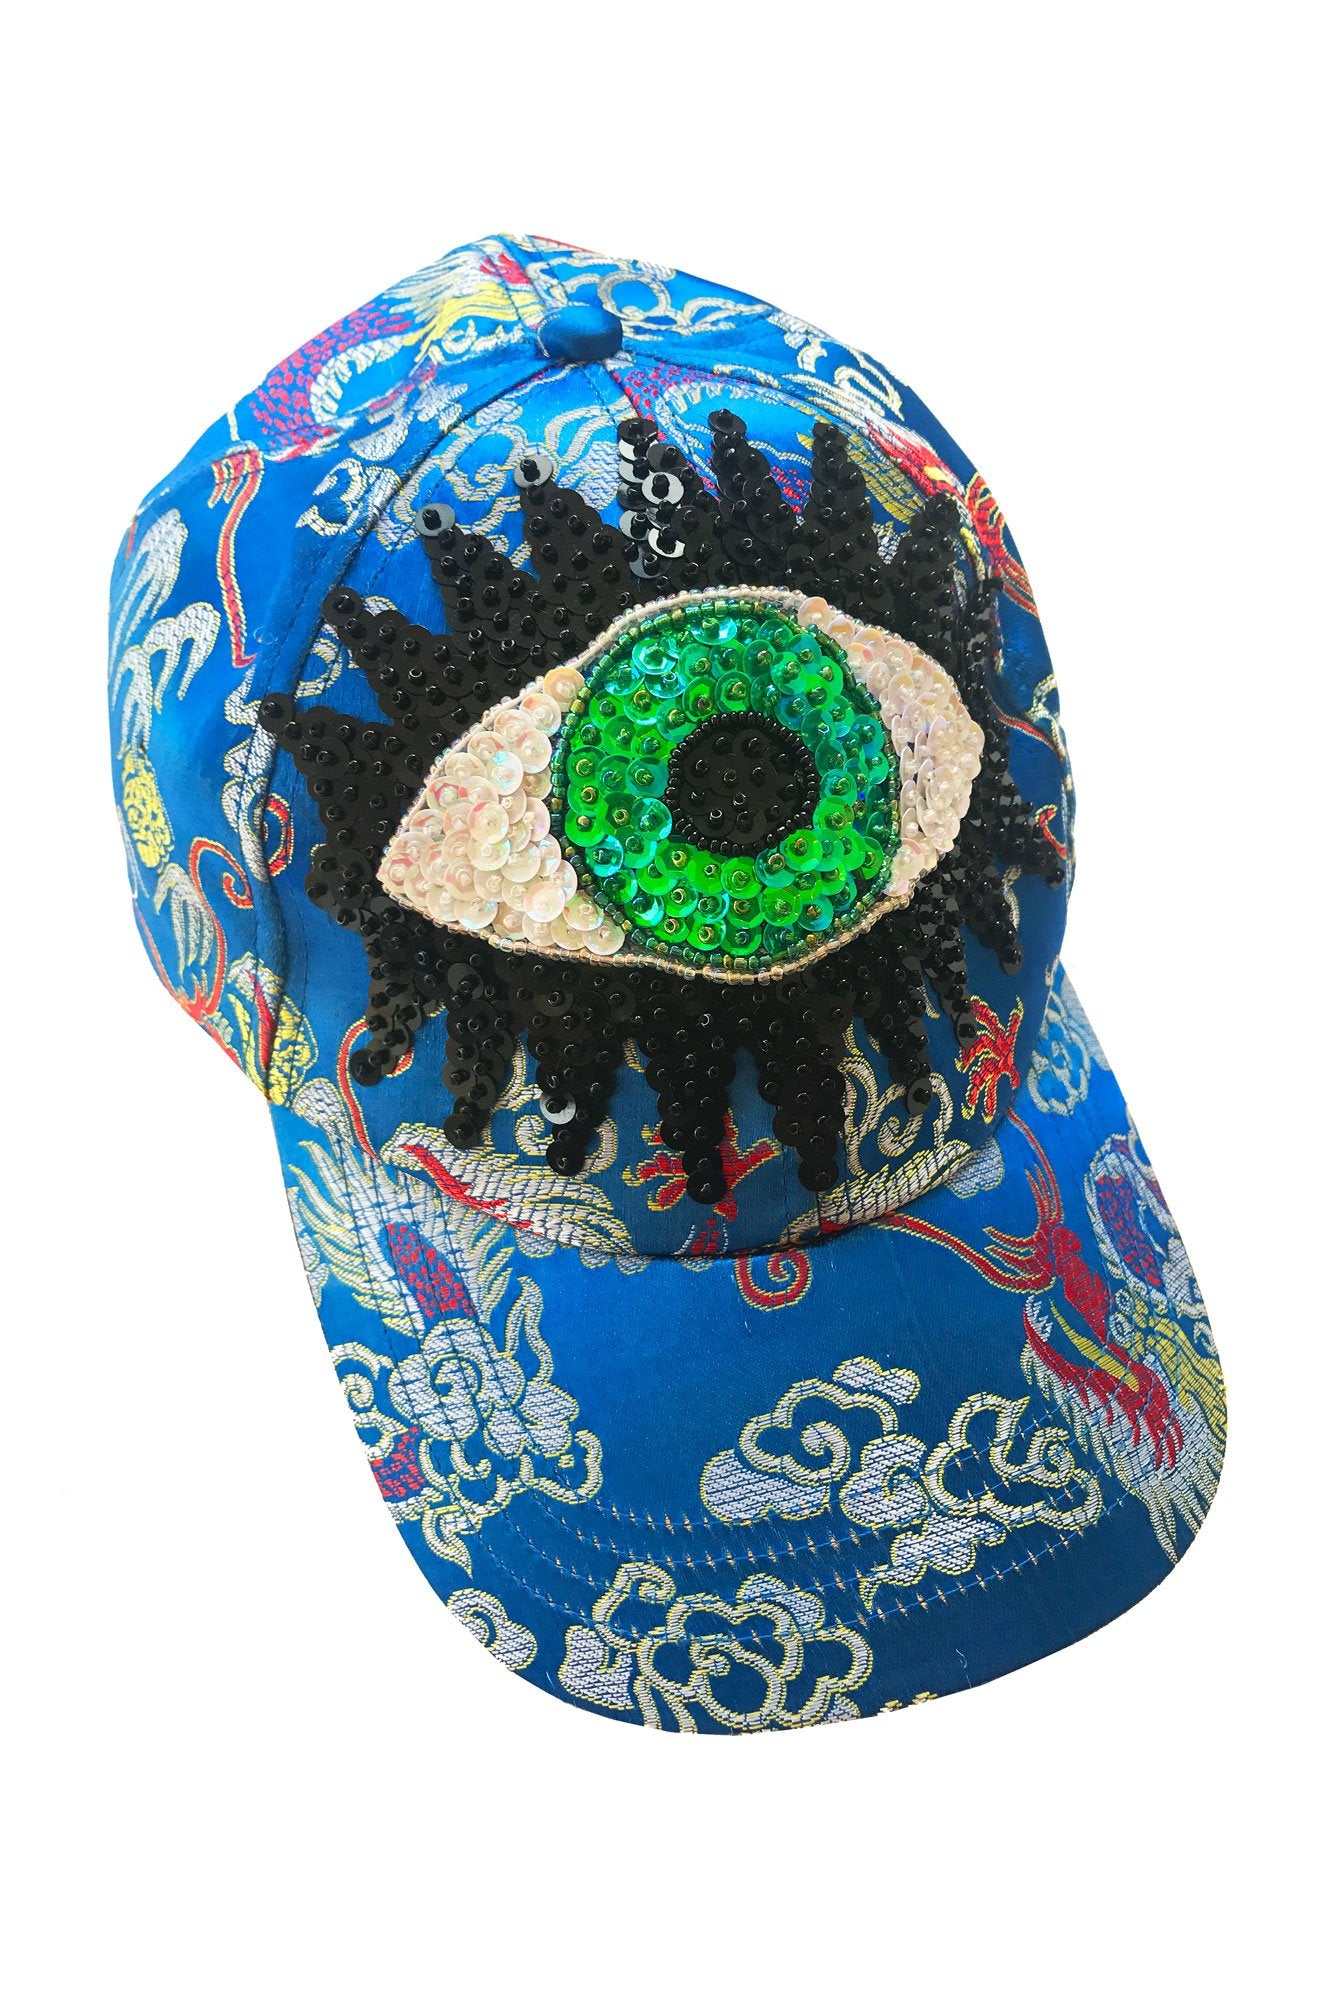 'SLEEPING DRAGON' Baseball Cap